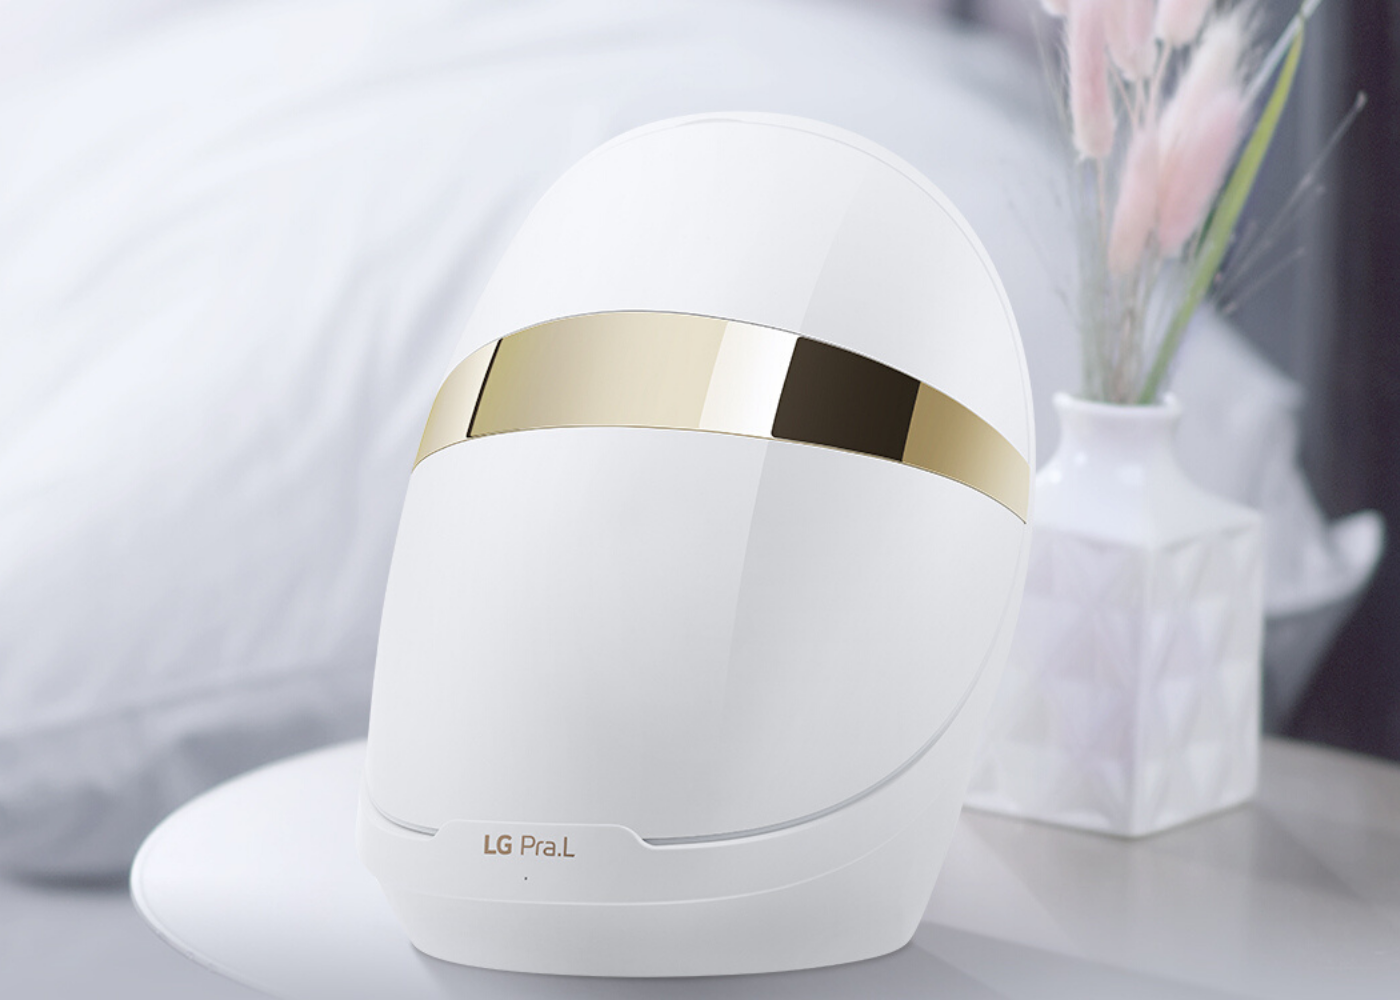 LG Pra.L Derma LED Mask review